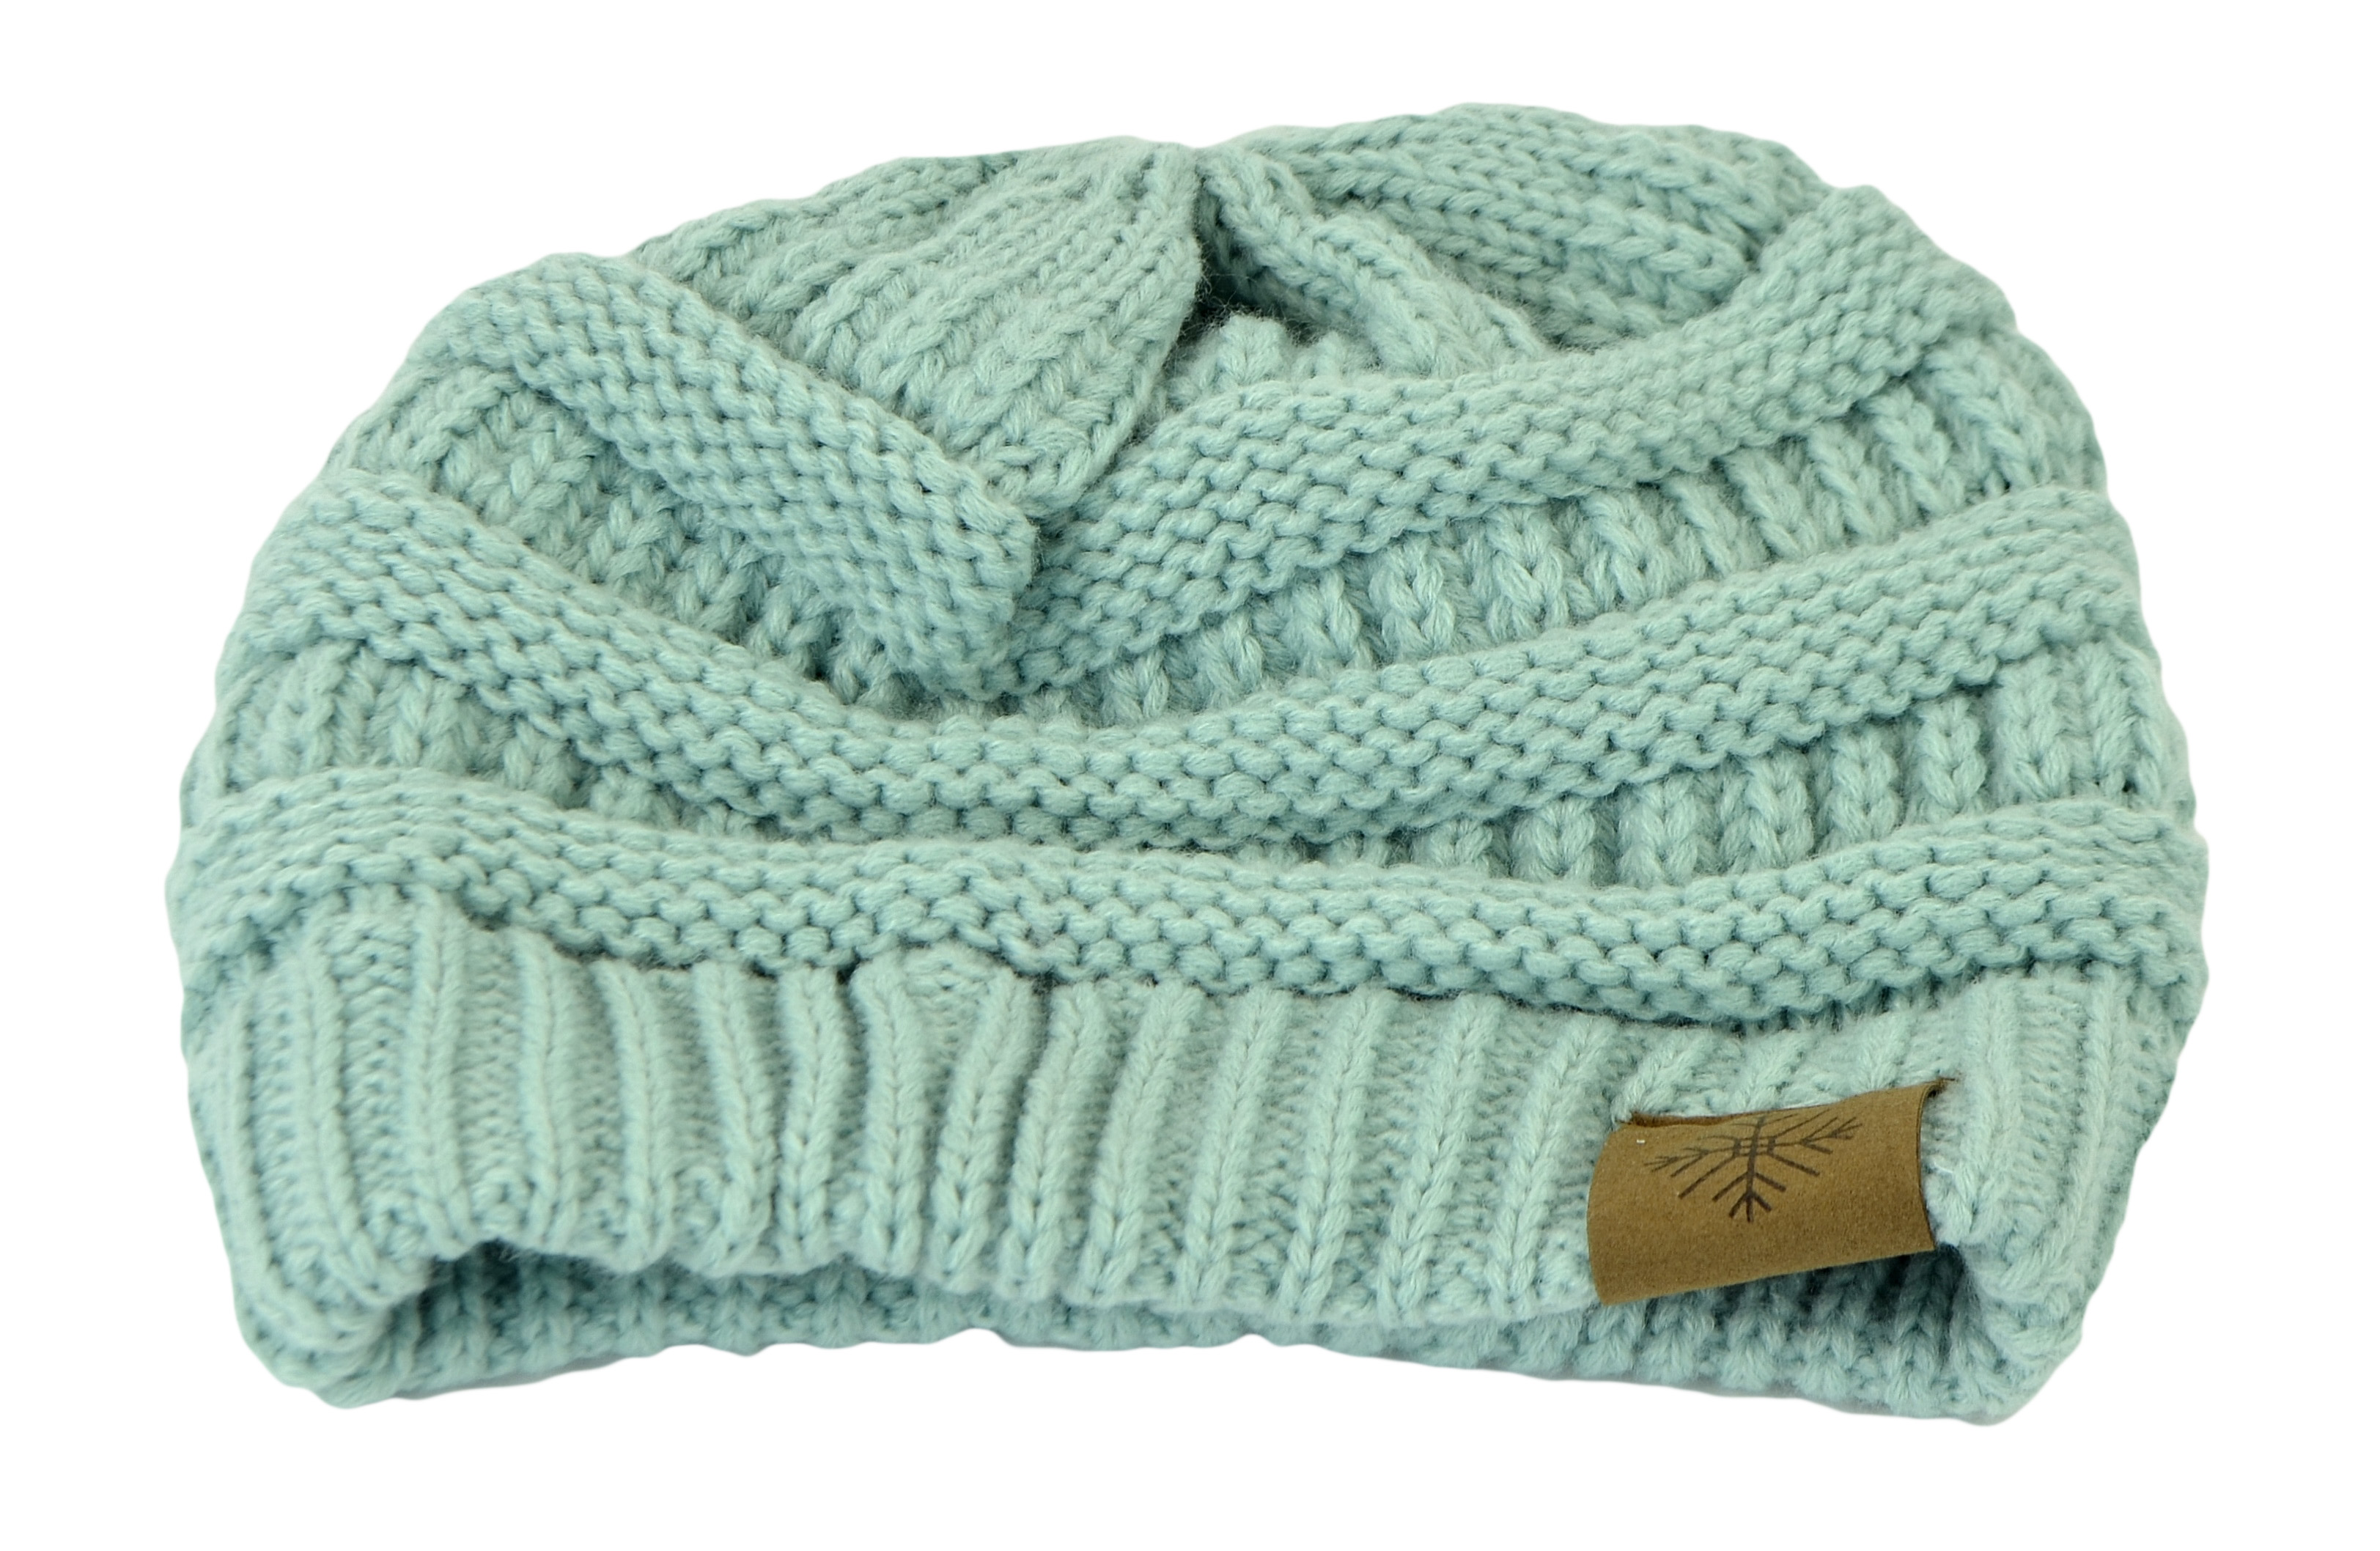 Belle Donne Women's Winter Fleece Lined Cable Knitted Pom Pom Beanie Hat - Mint-II